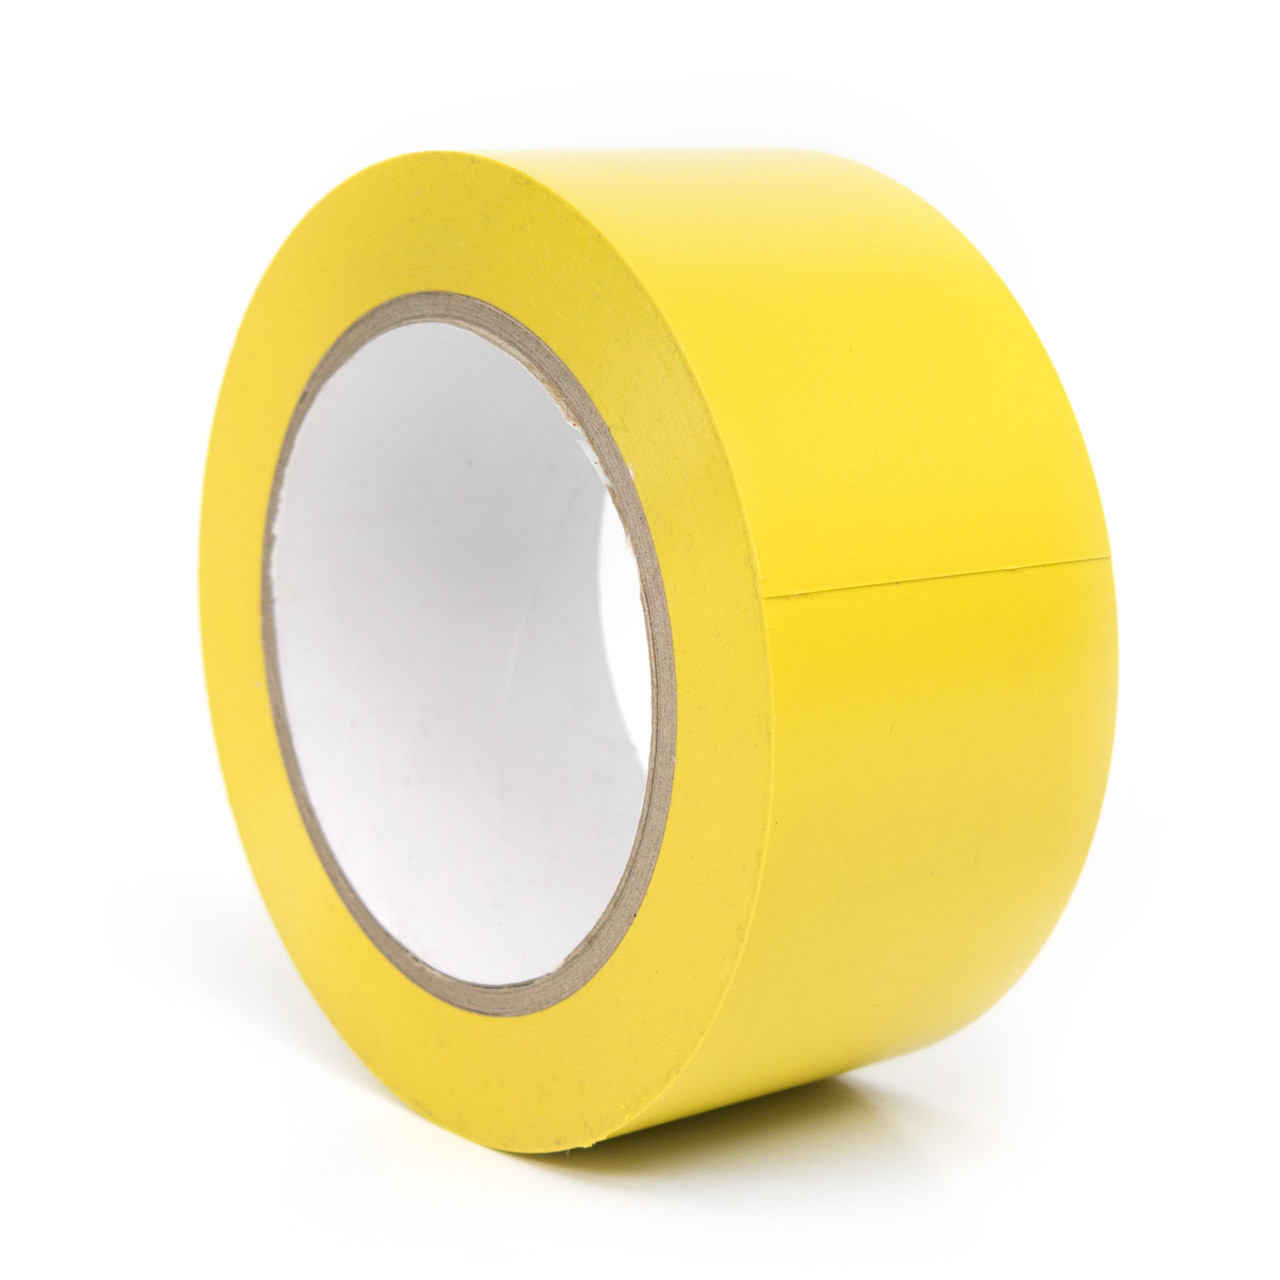 64342f10d8f357 5S Floor Marking Tape - Improve Efficiency with Organization